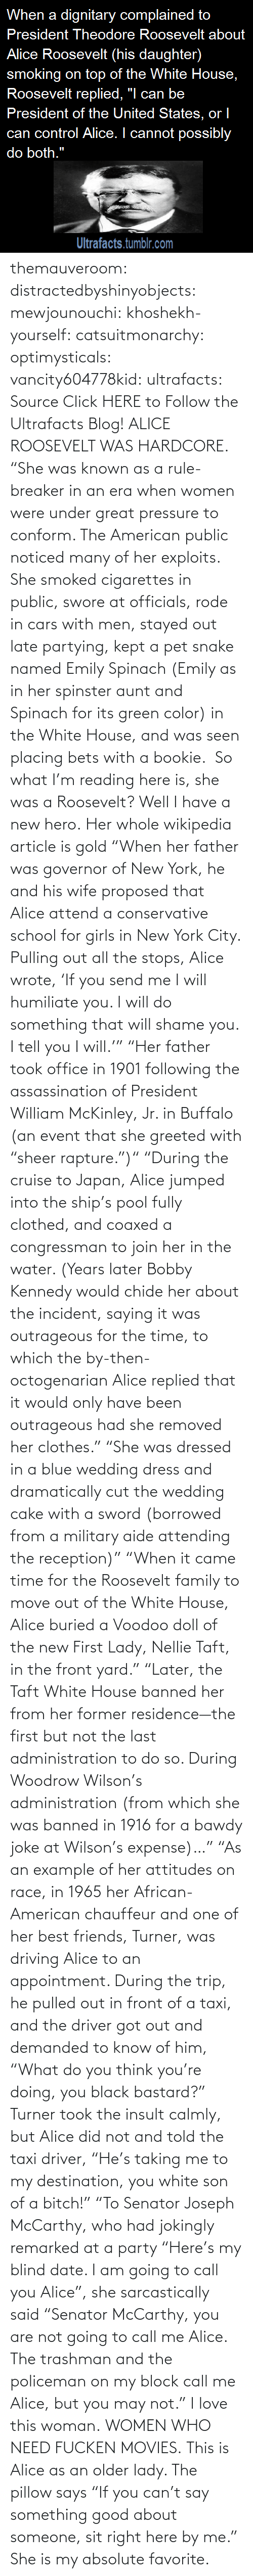 "Removed: themauveroom: distractedbyshinyobjects:  mewjounouchi:  khoshekh-yourself:  catsuitmonarchy:  optimysticals:  vancity604778kid:  ultrafacts:     Source Click HERE to Follow the Ultrafacts Blog!     ALICE ROOSEVELT WAS HARDCORE. ""She was known as a rule-breaker in an era when women were under great pressure to conform. The American public noticed many of her exploits. She smoked cigarettes in public, swore at officials, rode in cars with men, stayed out late partying, kept a pet snake named Emily Spinach (Emily as in her spinster aunt and Spinach for its green color) in the White House, and was seen placing bets with a bookie.    So what I'm reading here is, she was a Roosevelt?  Well I have a new hero.  Her whole wikipedia article is gold ""When her father was governor of New York, he and his wife proposed that Alice attend a conservative school for girls in New York City. Pulling out all the stops, Alice wrote, 'If you send me I will humiliate you. I will do something that will shame you. I tell you I will.'"" ""Her father took office in 1901 following the assassination of President William McKinley, Jr. in Buffalo (an event that she greeted with ""sheer rapture."")"" ""During the cruise to Japan, Alice jumped into the ship's pool fully clothed, and coaxed a congressman to join her in the water. (Years later Bobby Kennedy would chide her about the incident, saying it was outrageous for the time, to which the by-then-octogenarian Alice replied that it would only have been outrageous had she removed her clothes."" ""She was dressed in a blue wedding dress and dramatically cut the wedding cake with a sword (borrowed from a military aide attending the reception)"" ""When it came time for the Roosevelt family to move out of the White House, Alice buried a Voodoo doll of the new First Lady, Nellie Taft, in the front yard."" ""Later, the Taft White House banned her from her former residence—the first but not the last administration to do so. During Woodrow Wilson's administration (from which she was banned in 1916 for a bawdy joke at Wilson's expense)…"" ""As an example of her attitudes on race, in 1965 her African-American chauffeur and one of her best friends, Turner, was driving Alice to an appointment. During the trip, he pulled out in front of a taxi, and the driver got out and demanded to know of him, ""What do you think you're doing, you black bastard?"" Turner took the insult calmly, but Alice did not and told the taxi driver, ""He's taking me to my destination, you white son of a bitch!"" ""To Senator Joseph McCarthy, who had jokingly remarked at a party ""Here's my blind date. I am going to call you Alice"", she sarcastically said ""Senator McCarthy, you are not going to call me Alice. The trashman and the policeman on my block call me Alice, but you may not.""  I love this woman.  WOMEN WHO NEED FUCKEN MOVIES.   This is Alice as an older lady. The pillow says ""If you can't say something good about someone, sit right here by me.""  She is my absolute favorite."